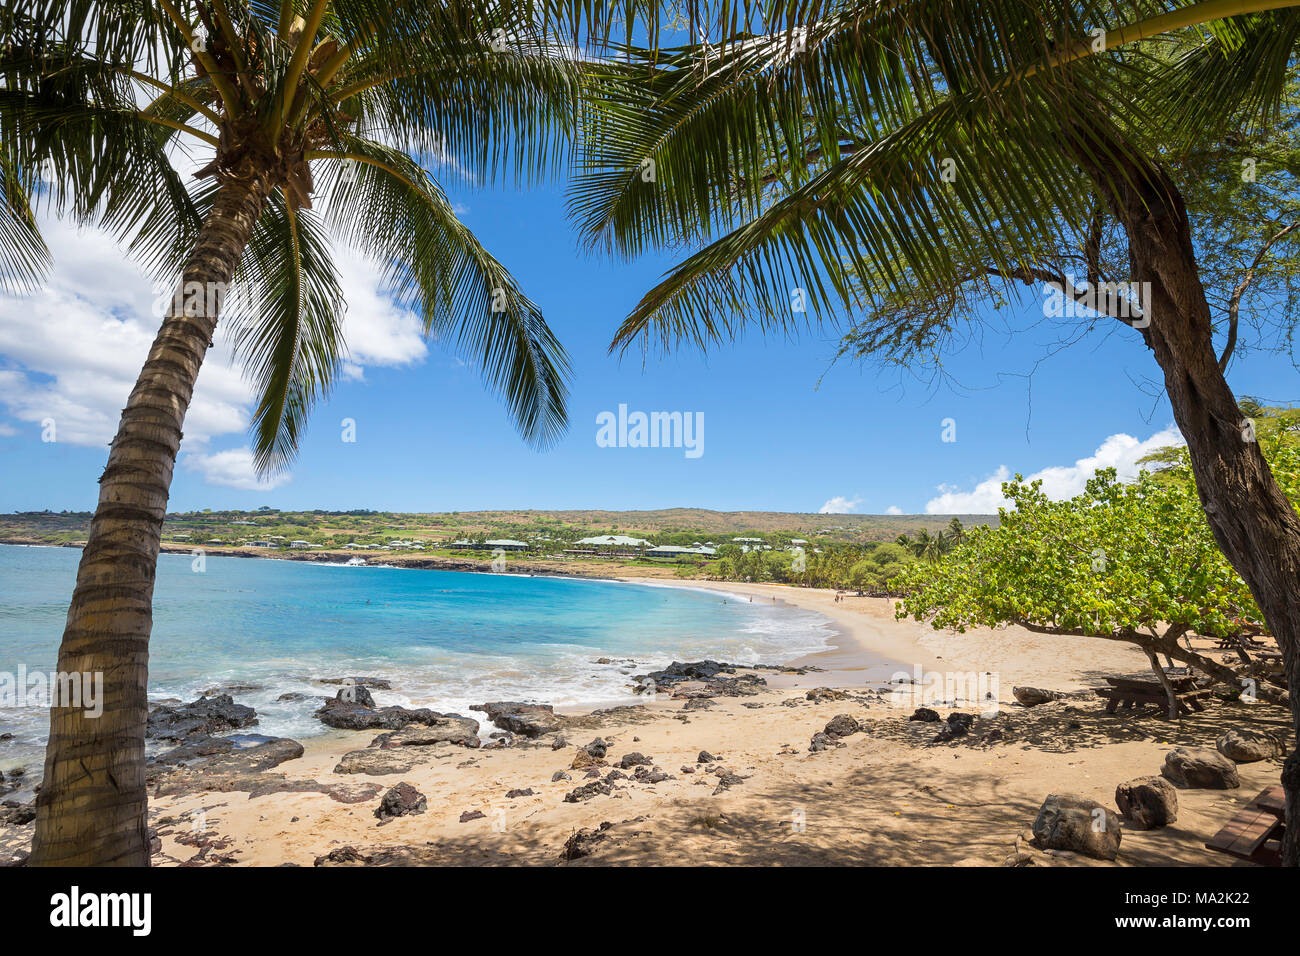 Four Seasons Resort over looking the golden beach and palm tree's at Hulopo'e Beach Park, Lanai Island, Hawaii, USA. - Stock Image